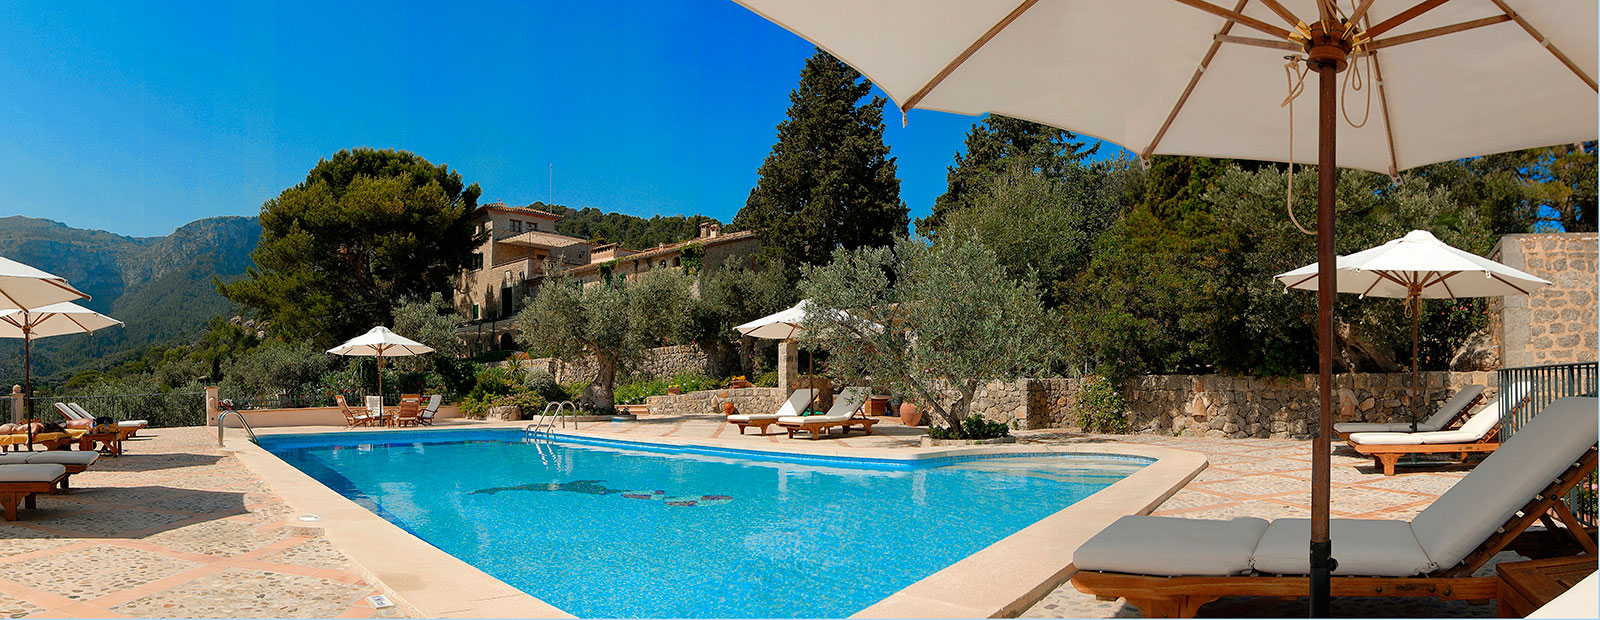 Finca in Majorca with pool